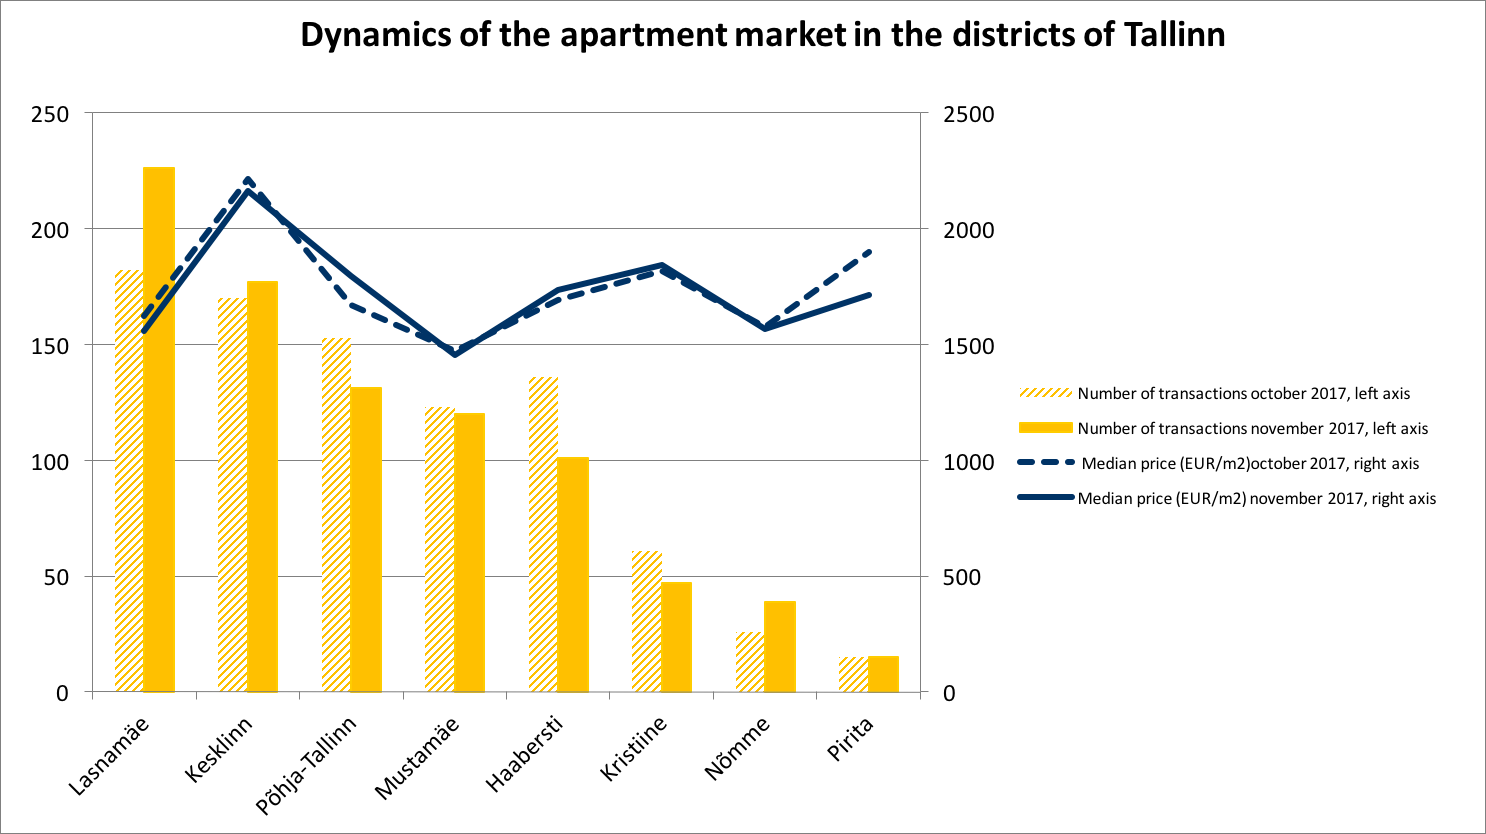 171218 Dynamics of the Estonian apartment market in the districts of Tallinn 2